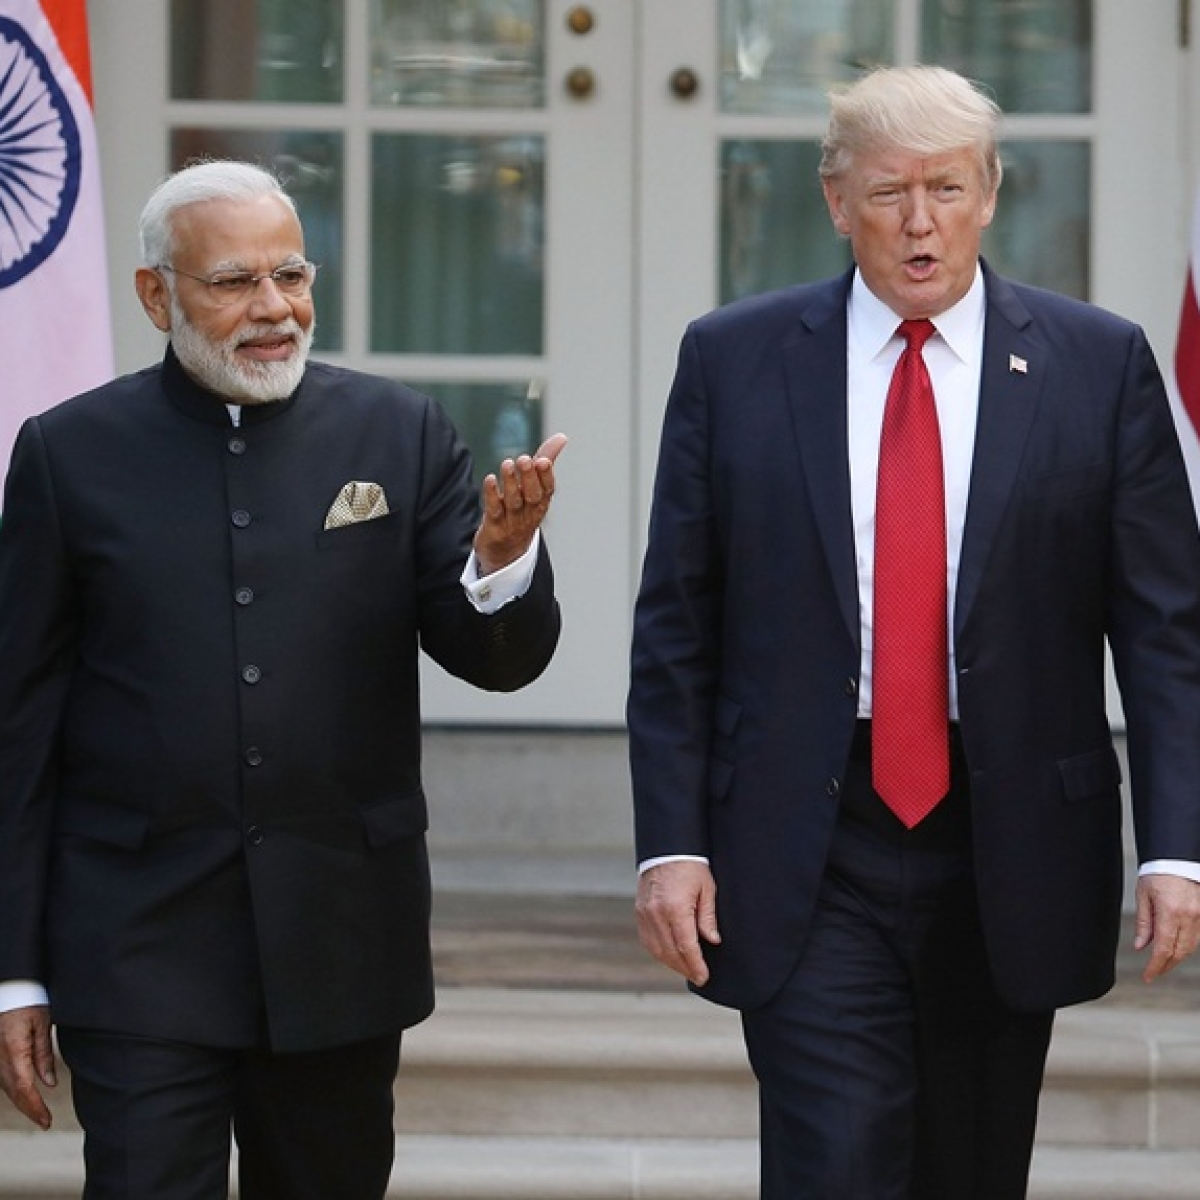 Donald Trump to join PM Narendra Modi at 'Howdy, Modi!' event in Houston